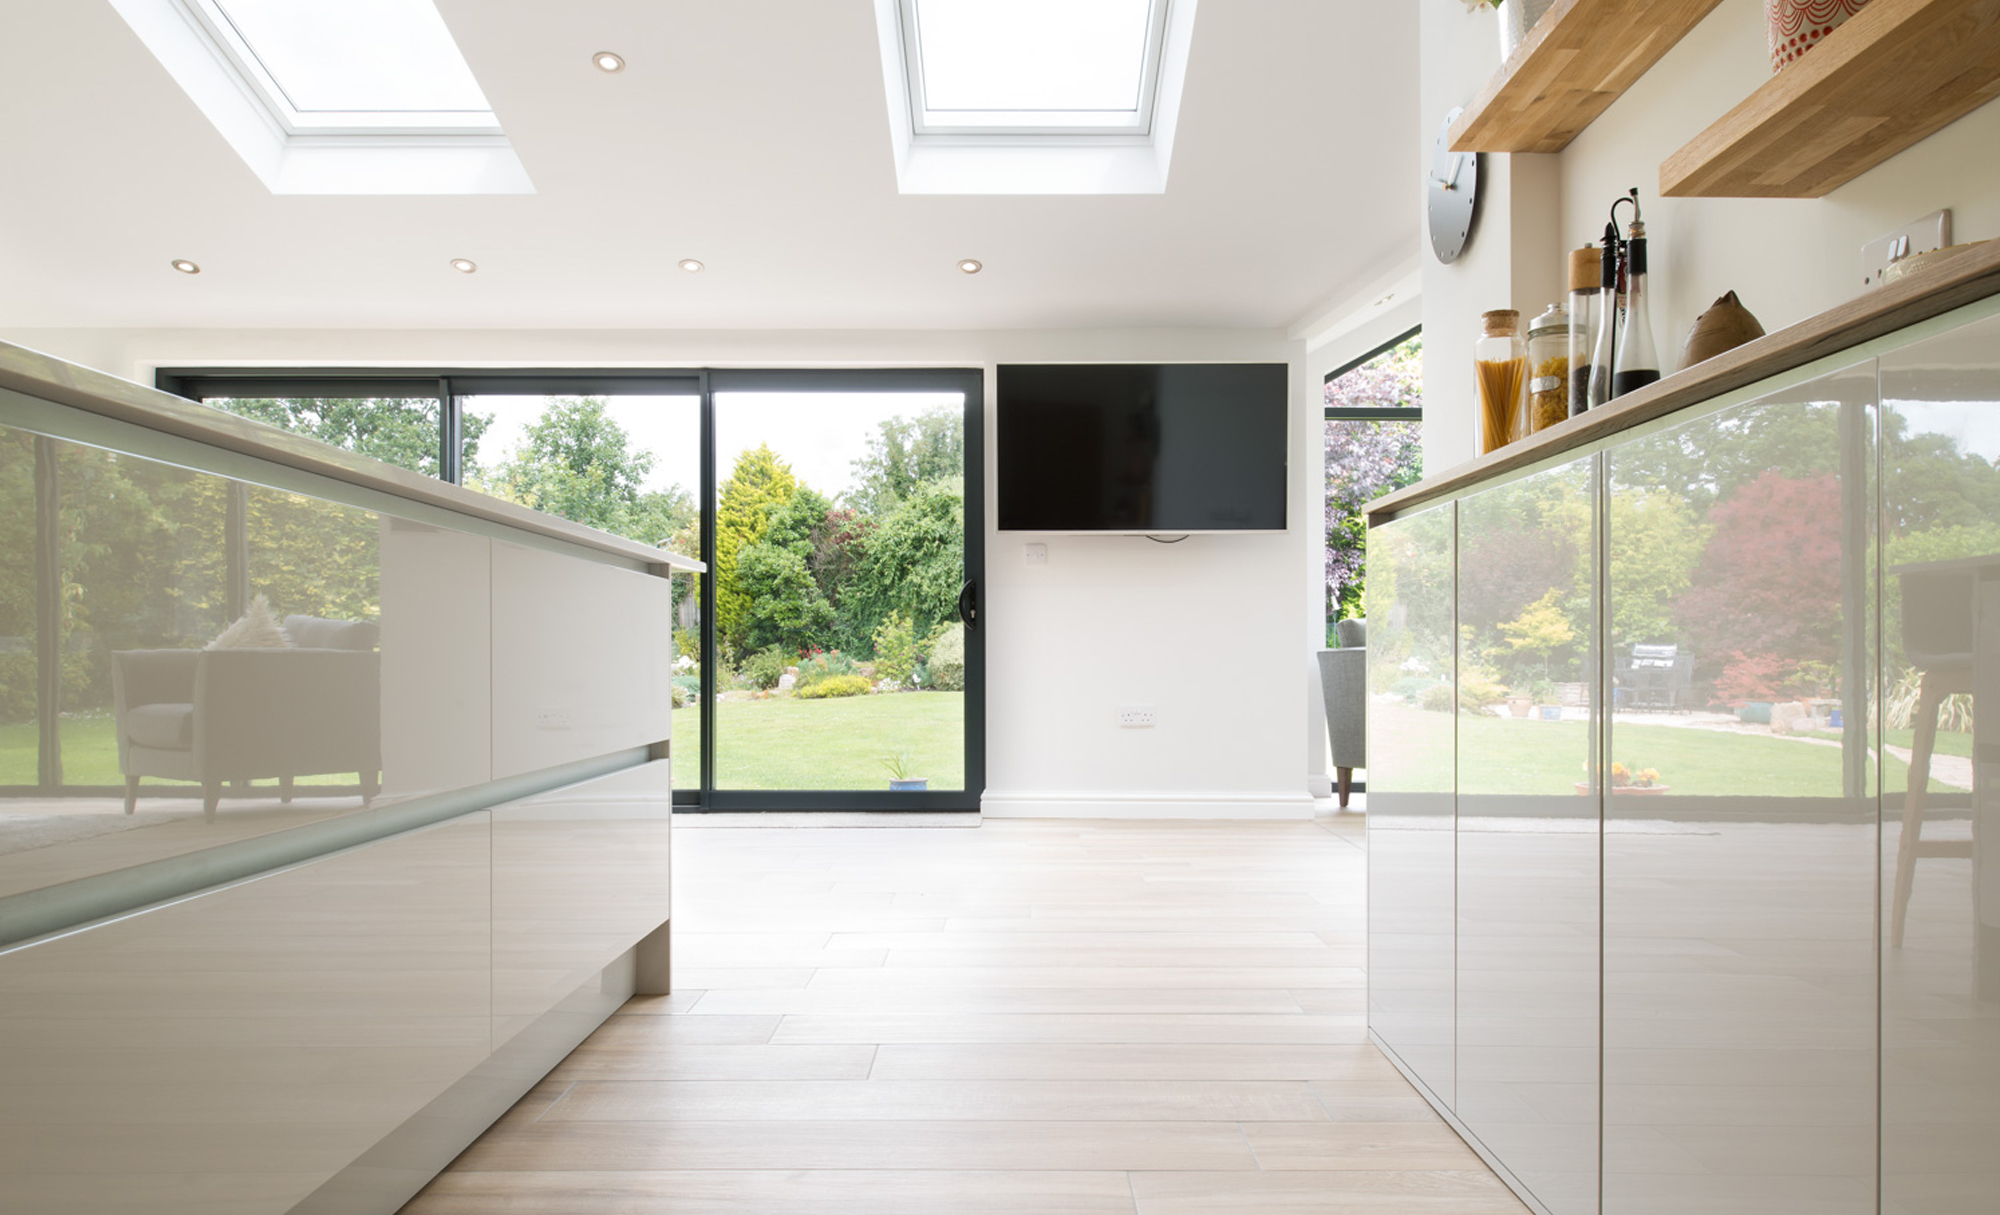 Kitchen Stori Zola Gloss Light Grey Kitchen by Maelstrom for a home in Lancaster Window